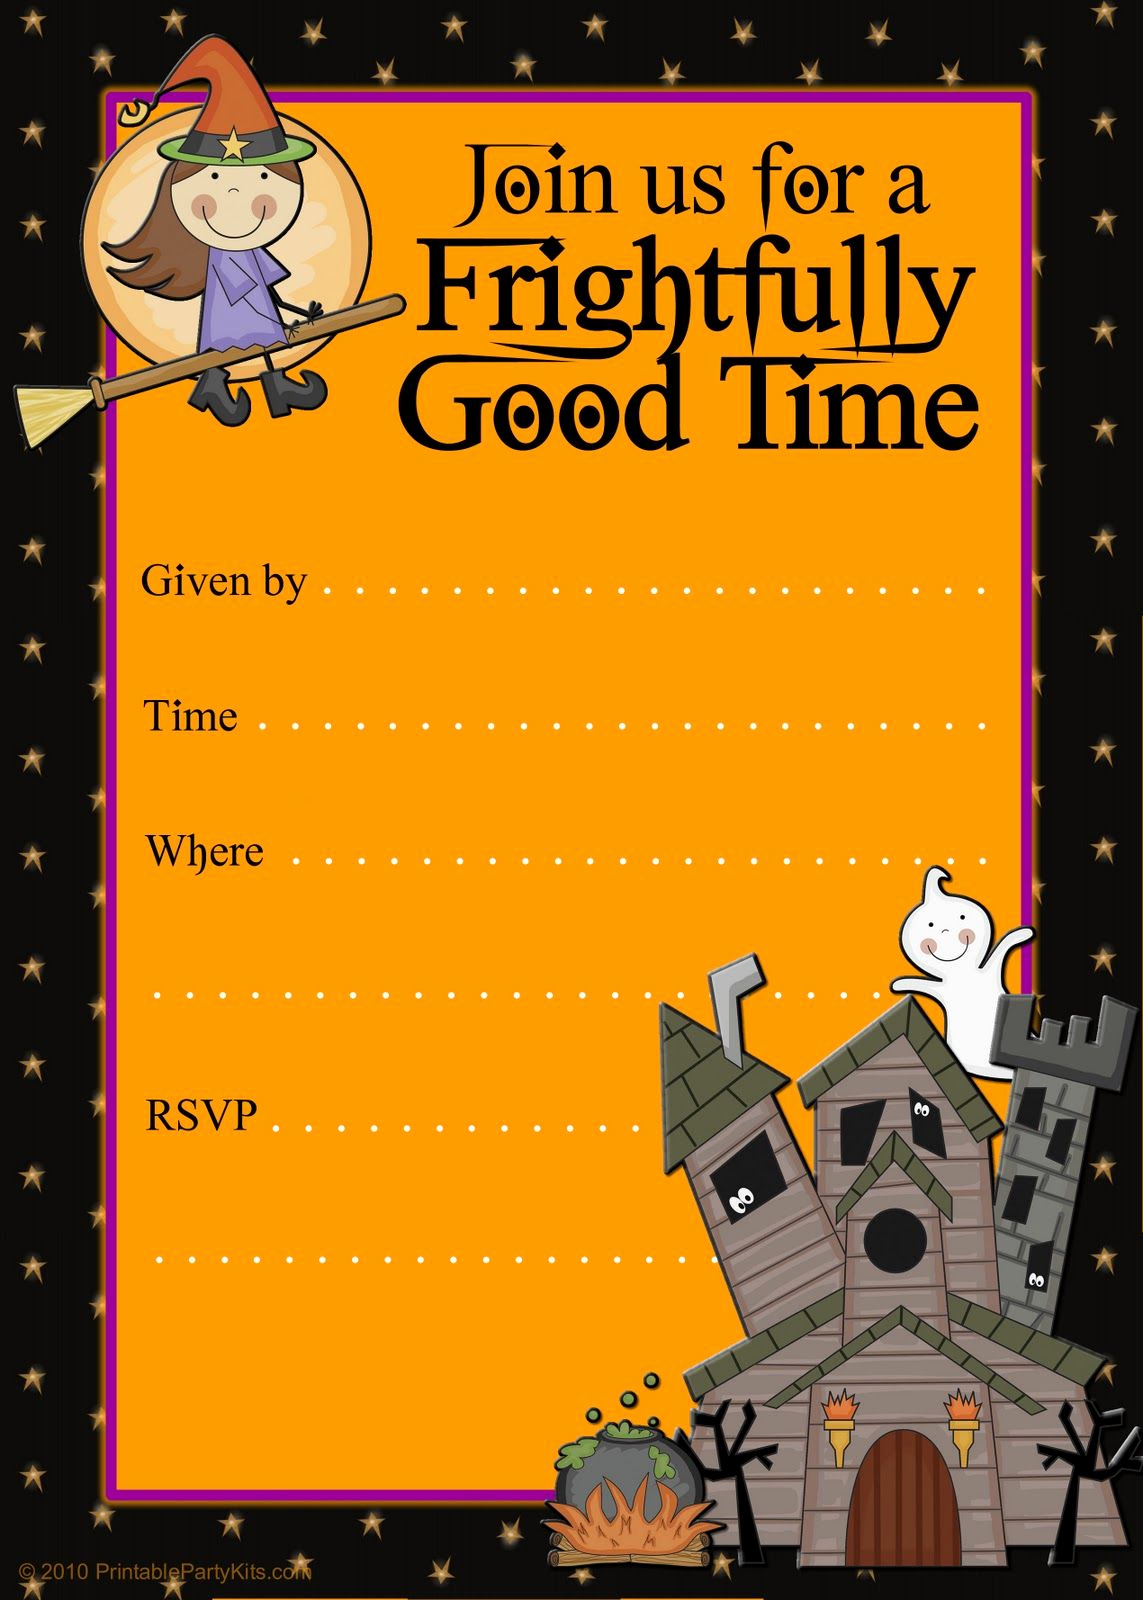 Halloween Party Invite Template Beautiful Free Halloween Flyer Invitations Printable